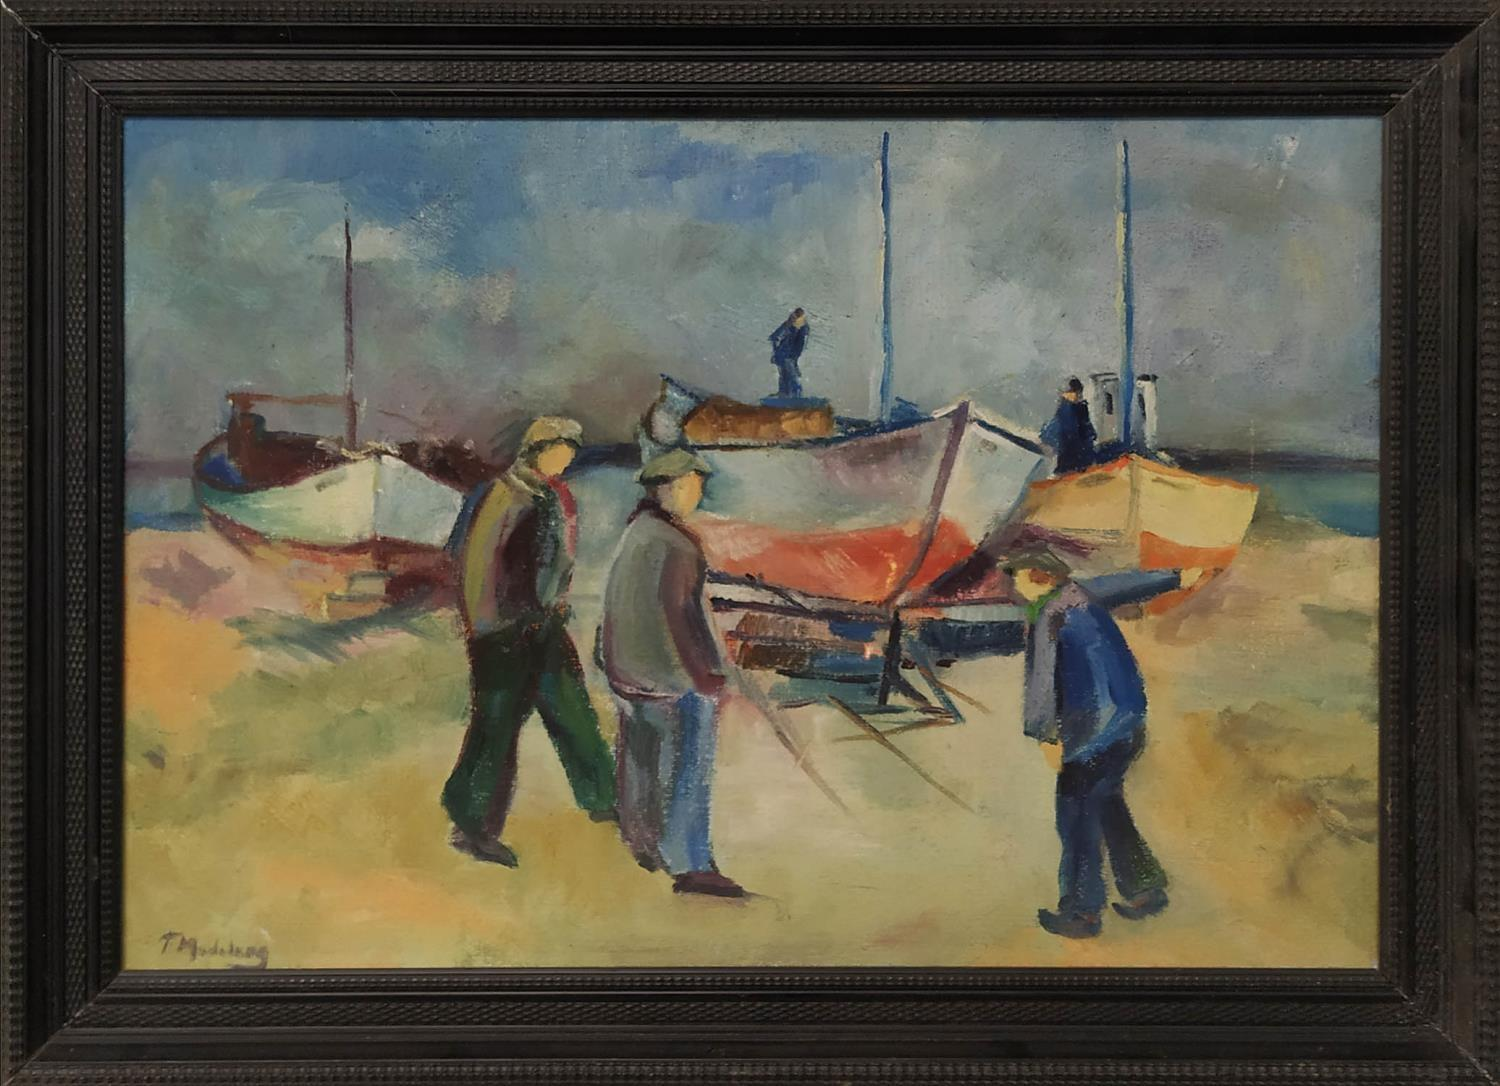 FREDERICK MADELUNG (20th century, German) 'Fisherman and Boats), oil on canvas, signed and framed,